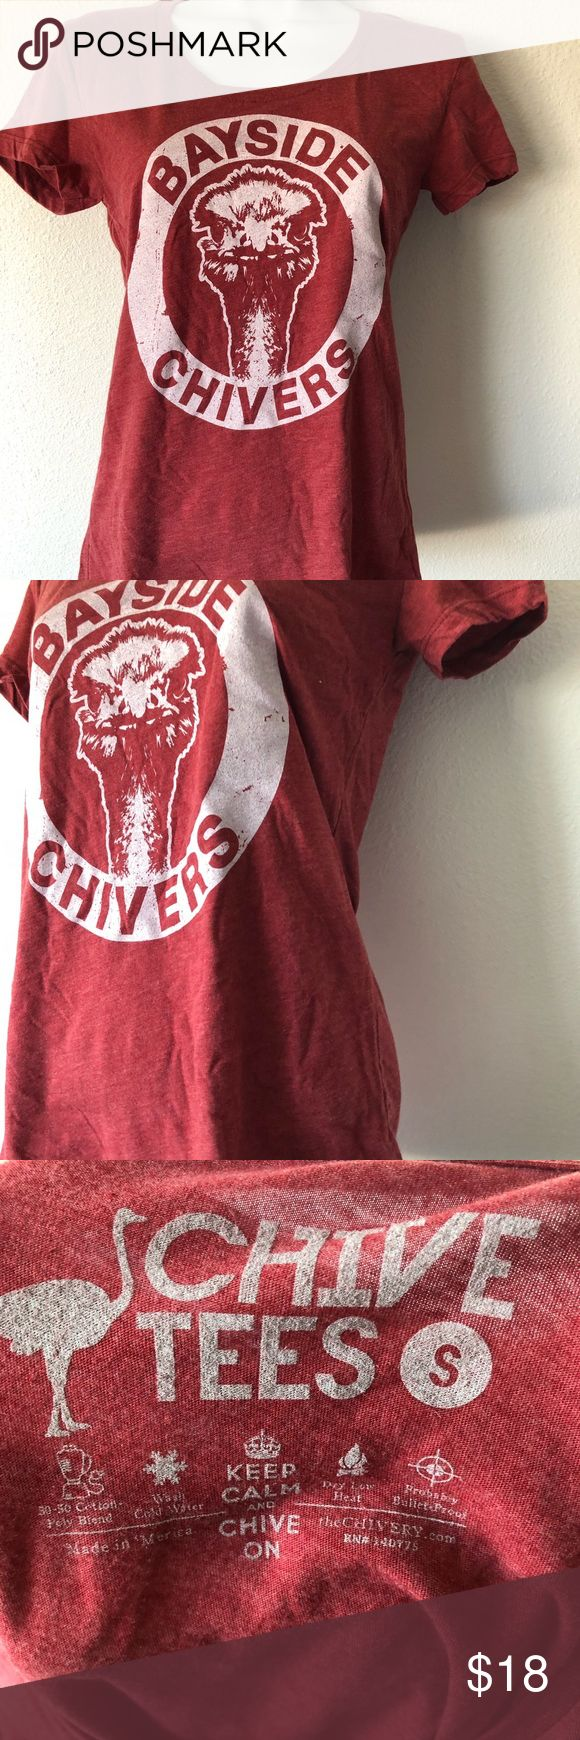 The bayside chives ostrich t shirt sz small nwot The chive small burgundy T-shirt ostrich new without  tags sold out the chivery Tops Tees - Short Sleeve